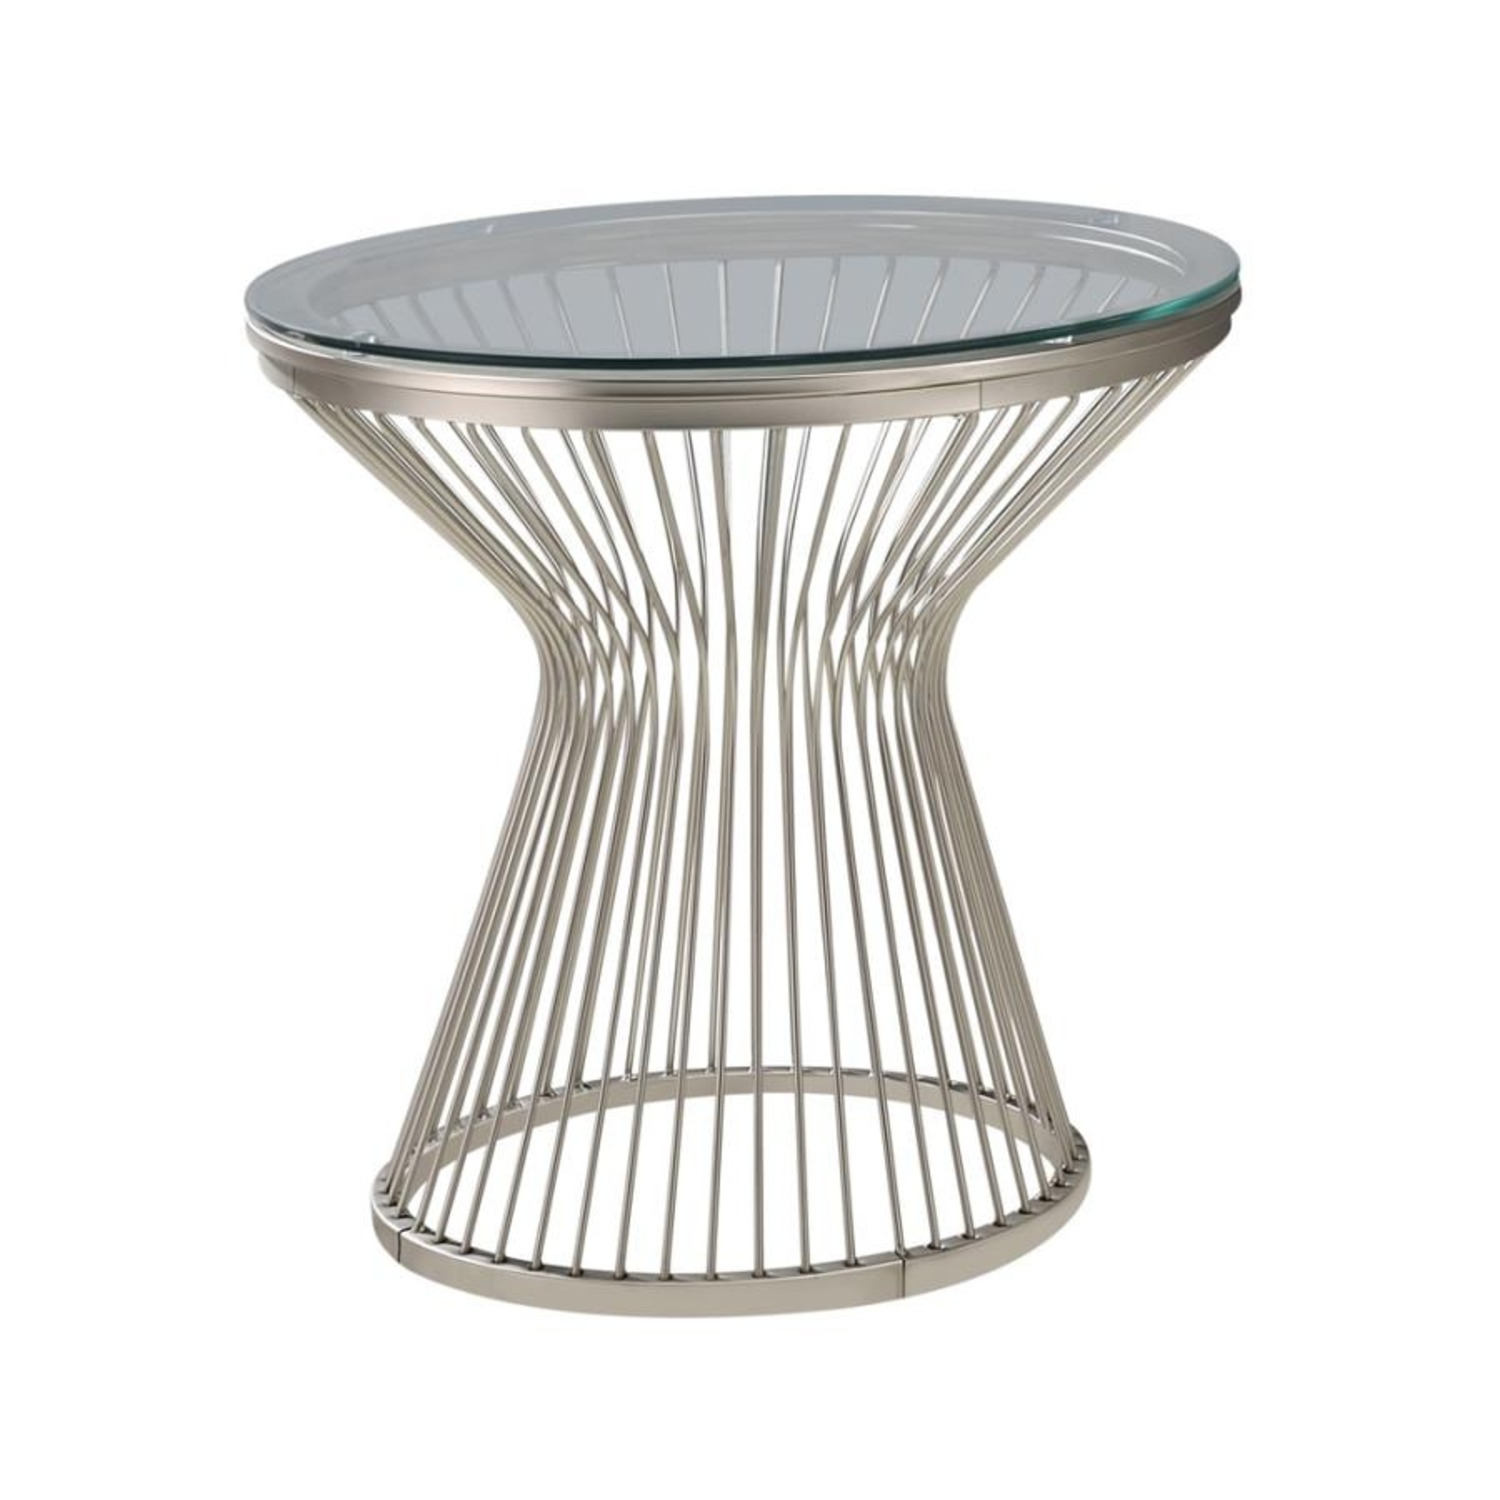 End Table In An Hourglass Shaped Base  - image-0